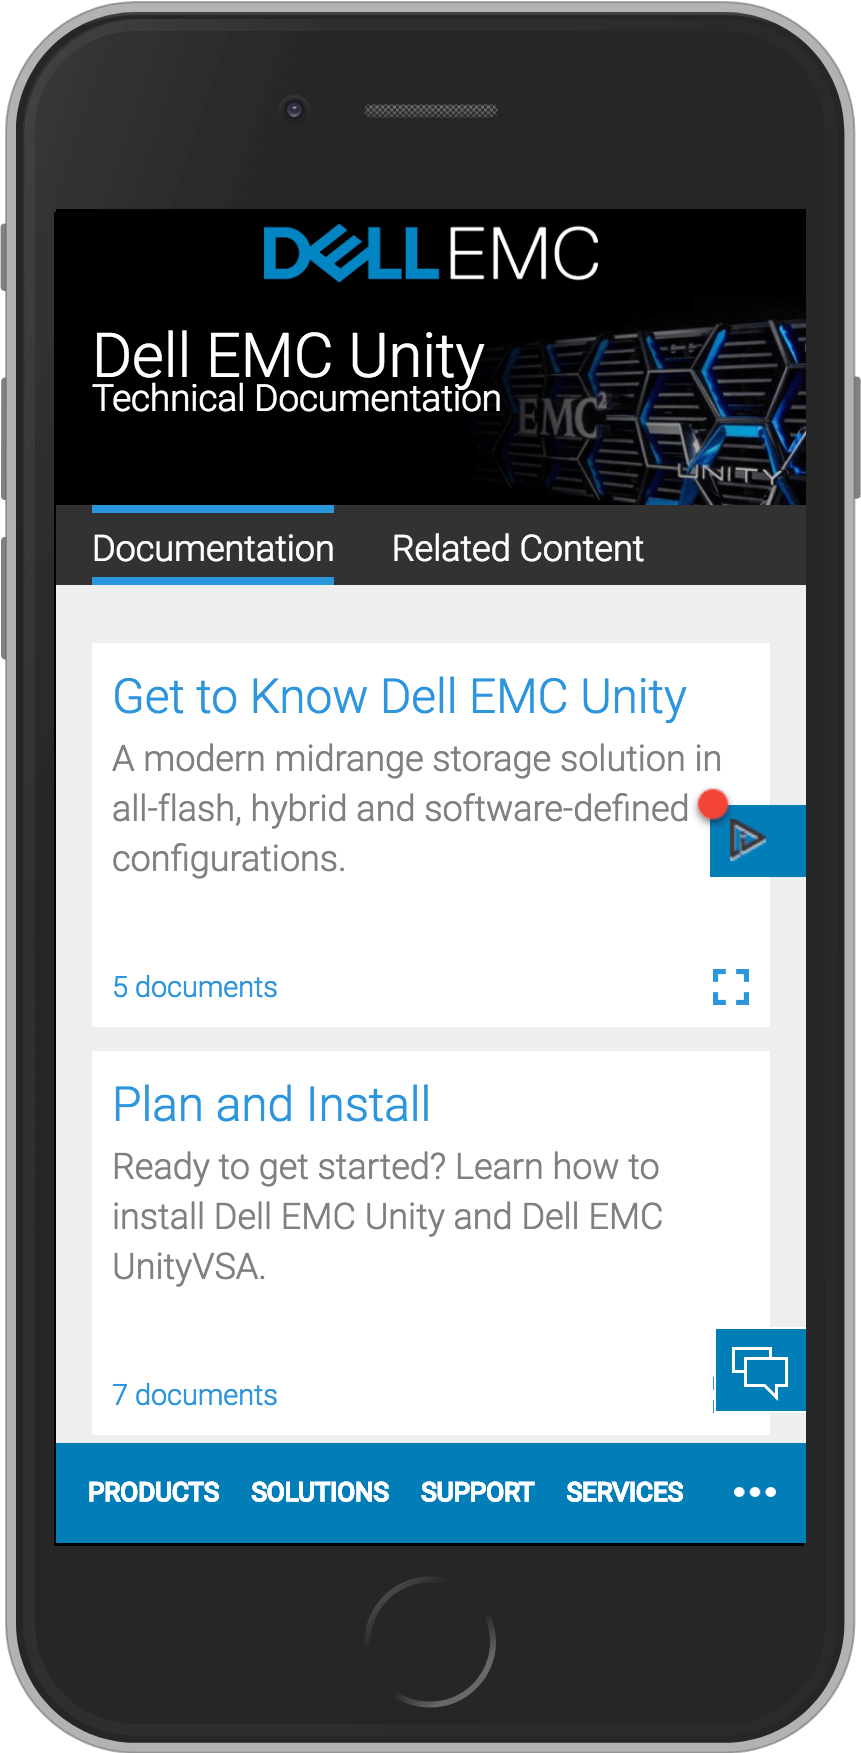 Dell EMC Technical Documents » Ian Armstrong | UX Design